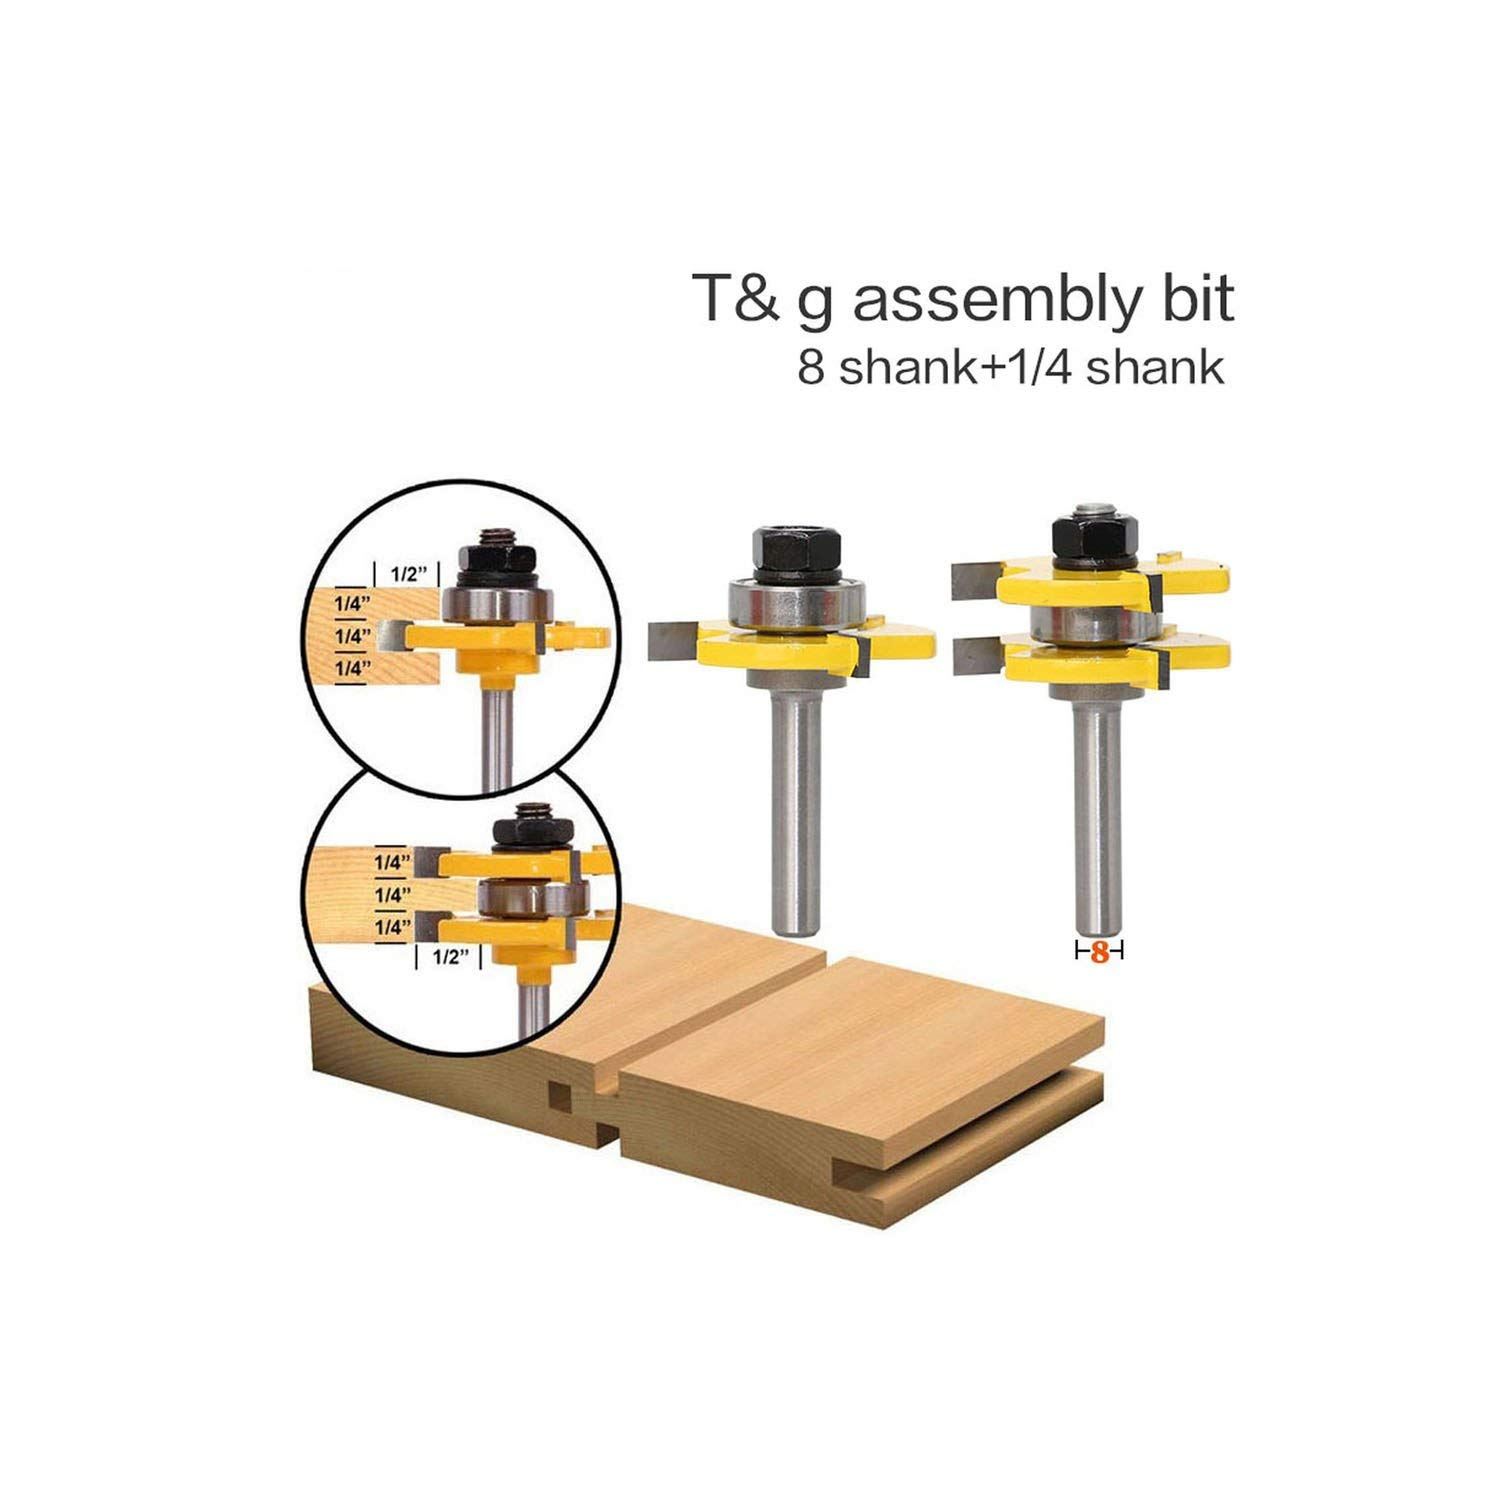 2 Pc 8mm Shank Tongue /& Groove Joint Assembly Router Bit Set 3//4 Stock Wood Cutting Tool,As Picture